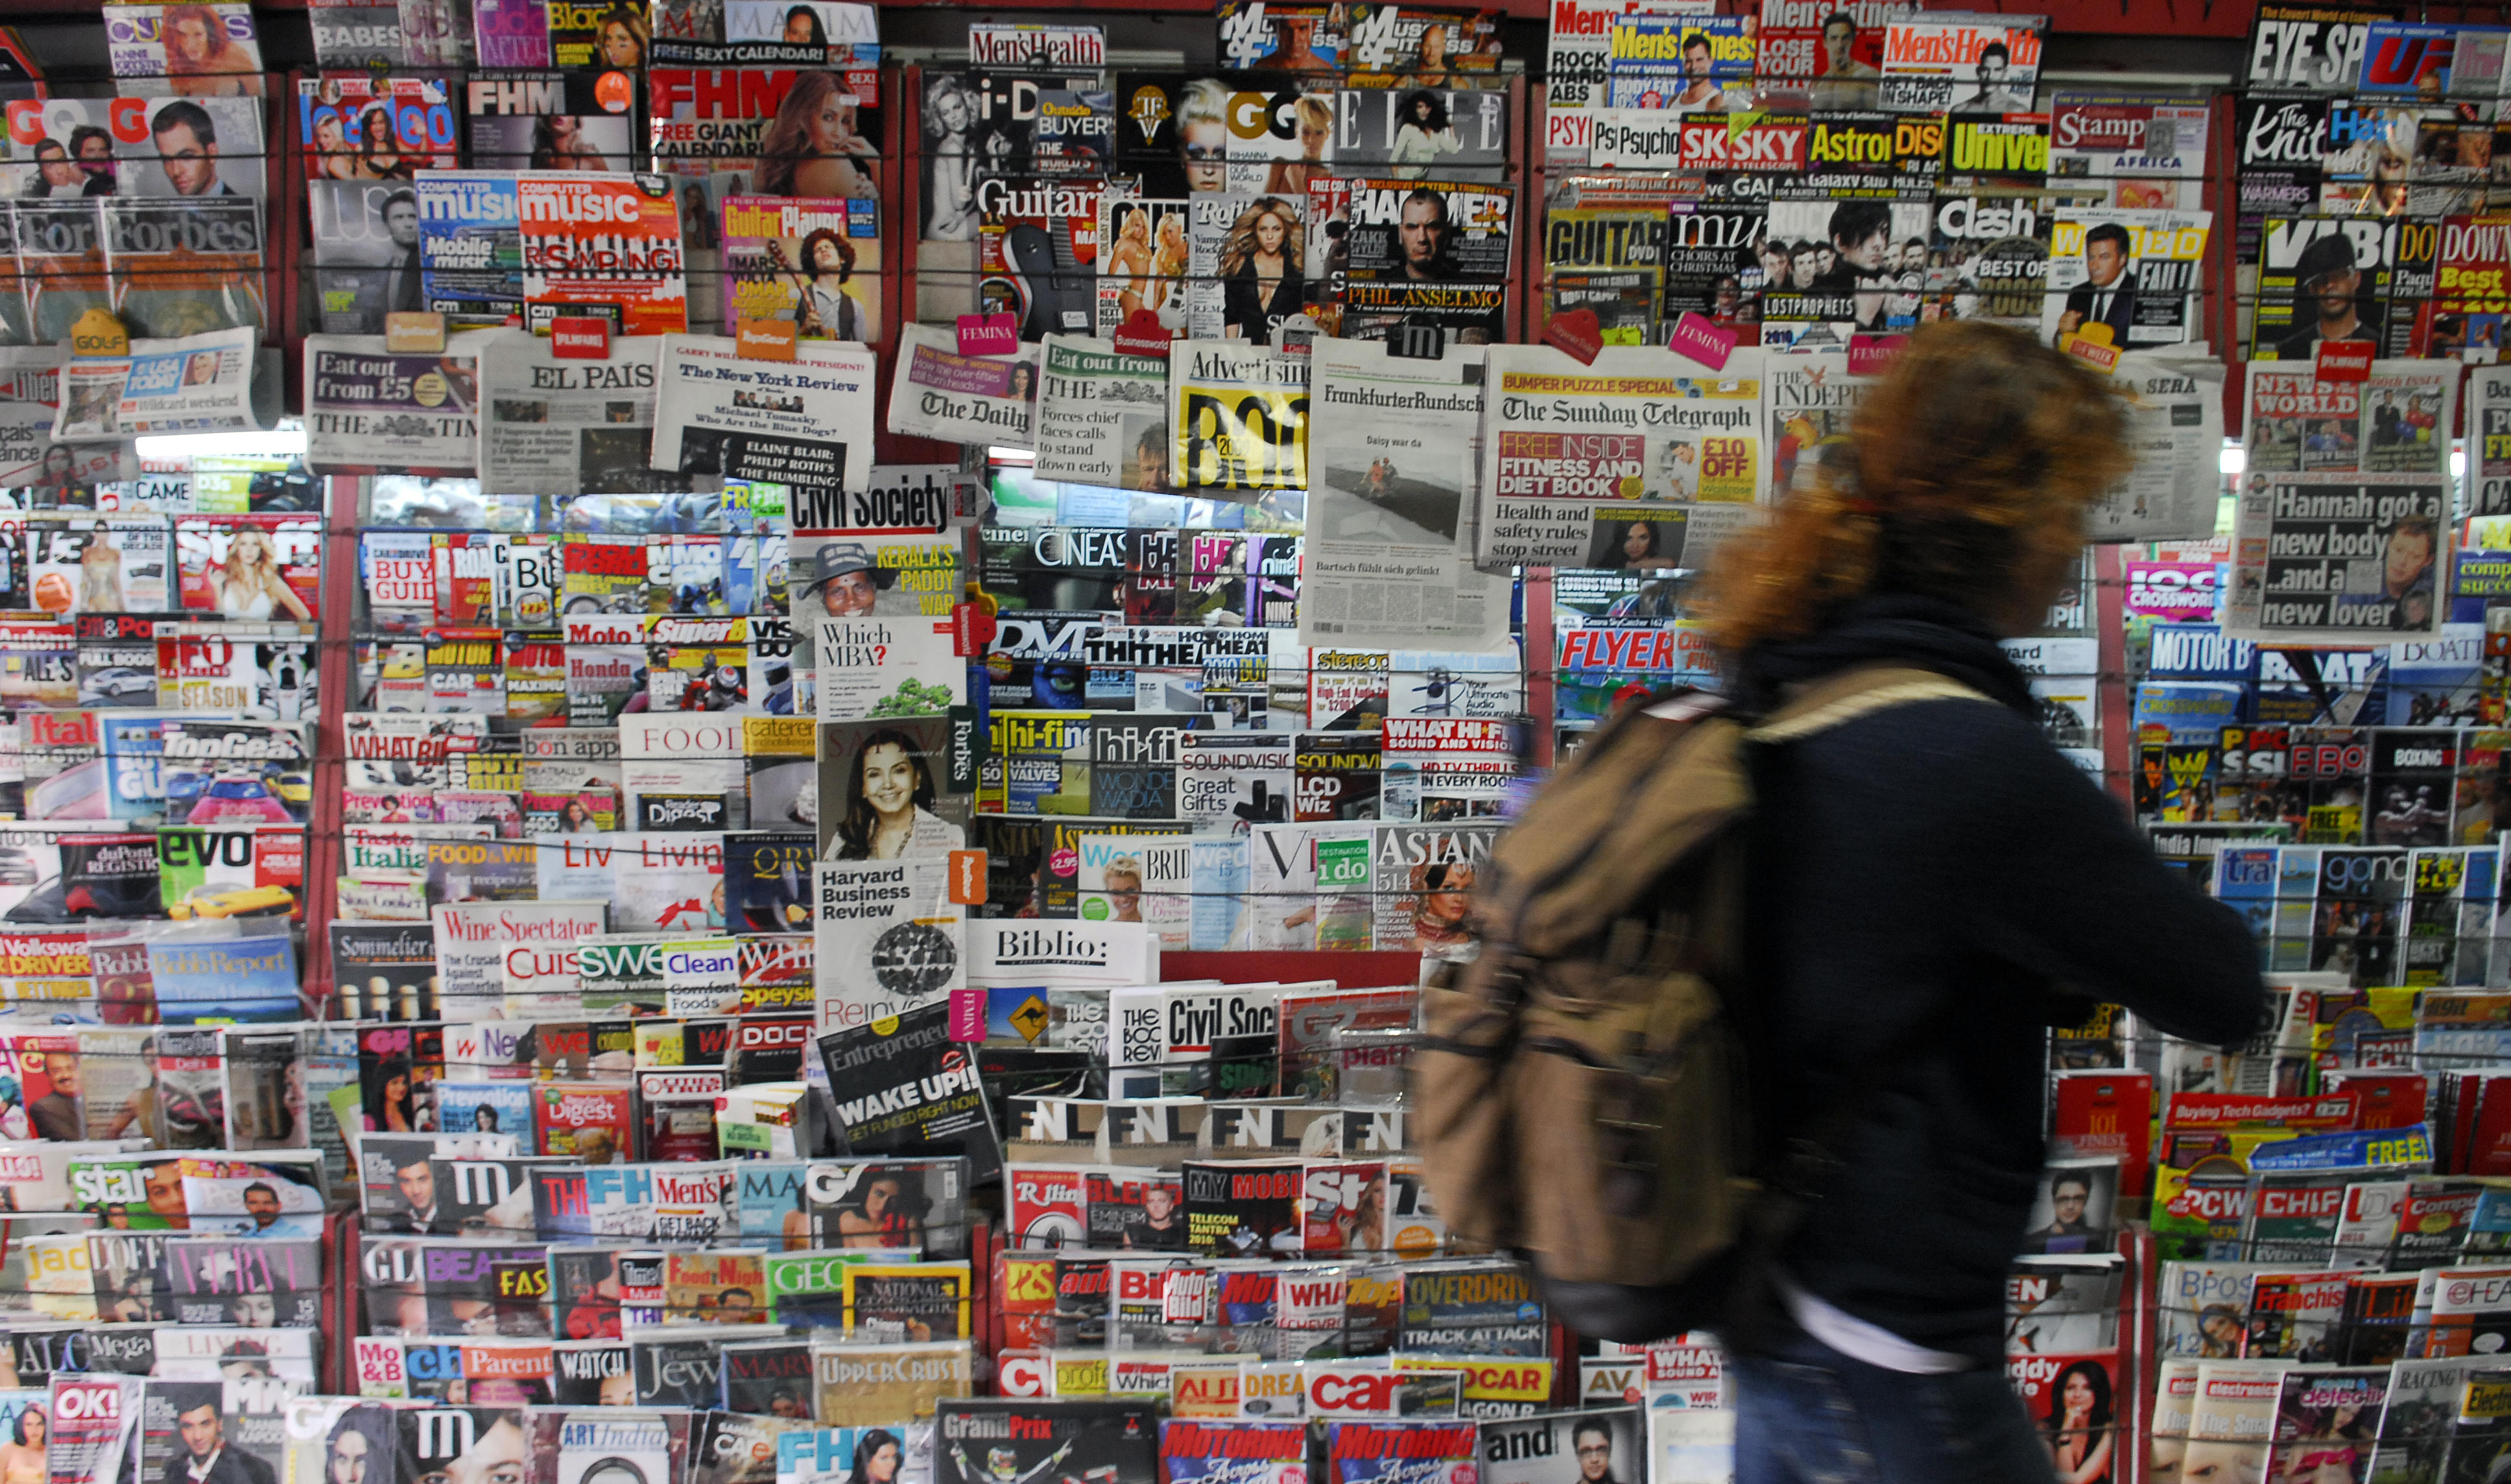 Newspapers, Magazines on display At Newsstand